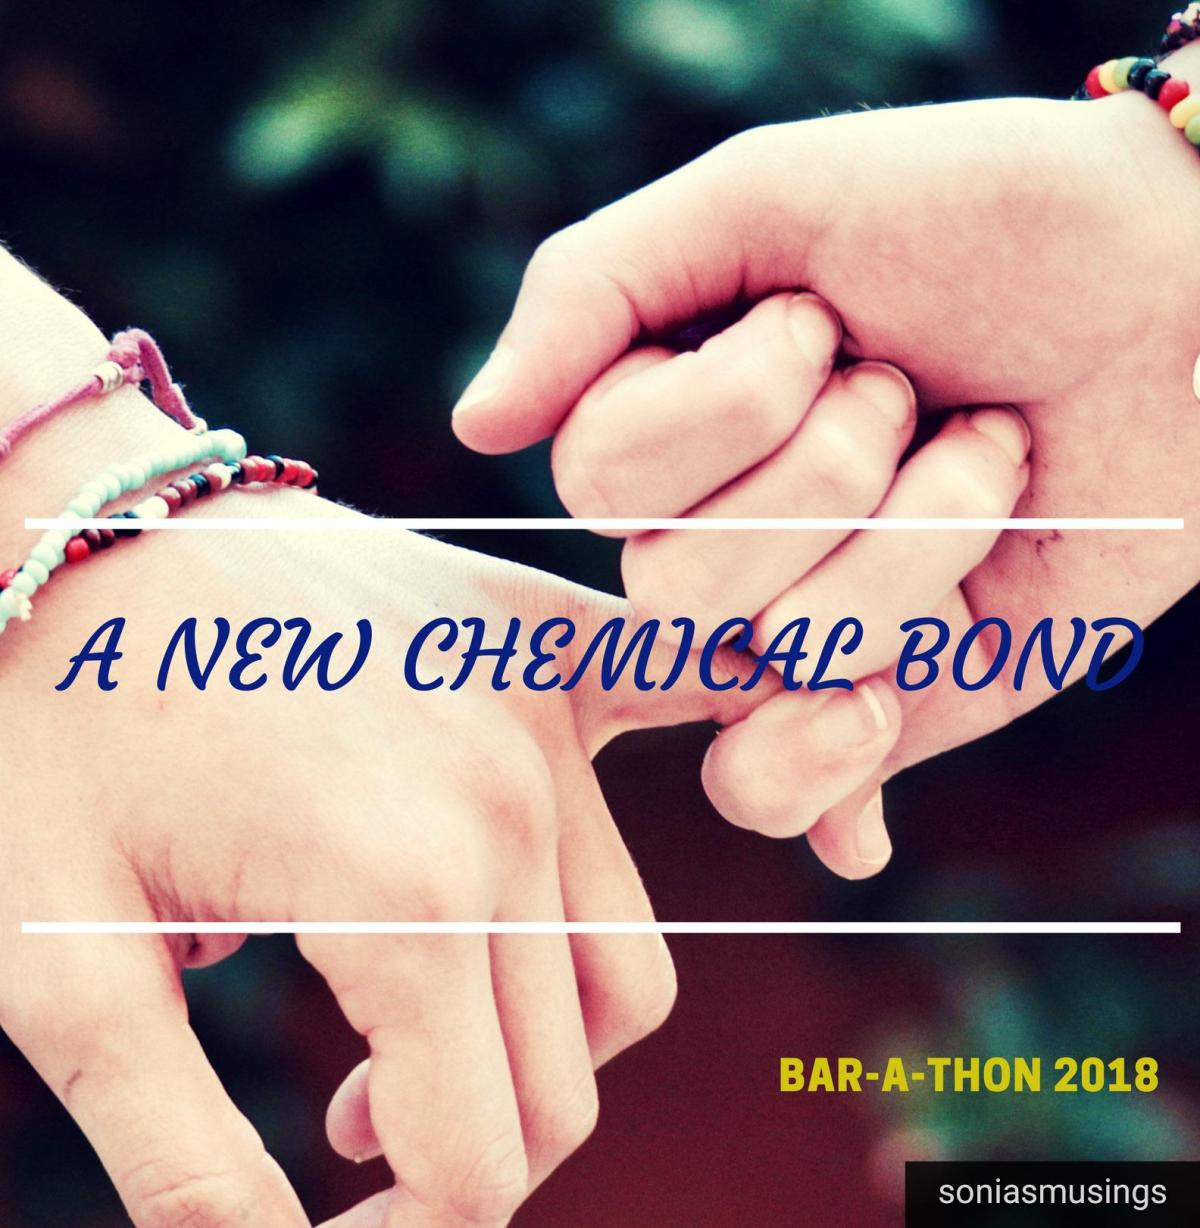 A new chemical bond